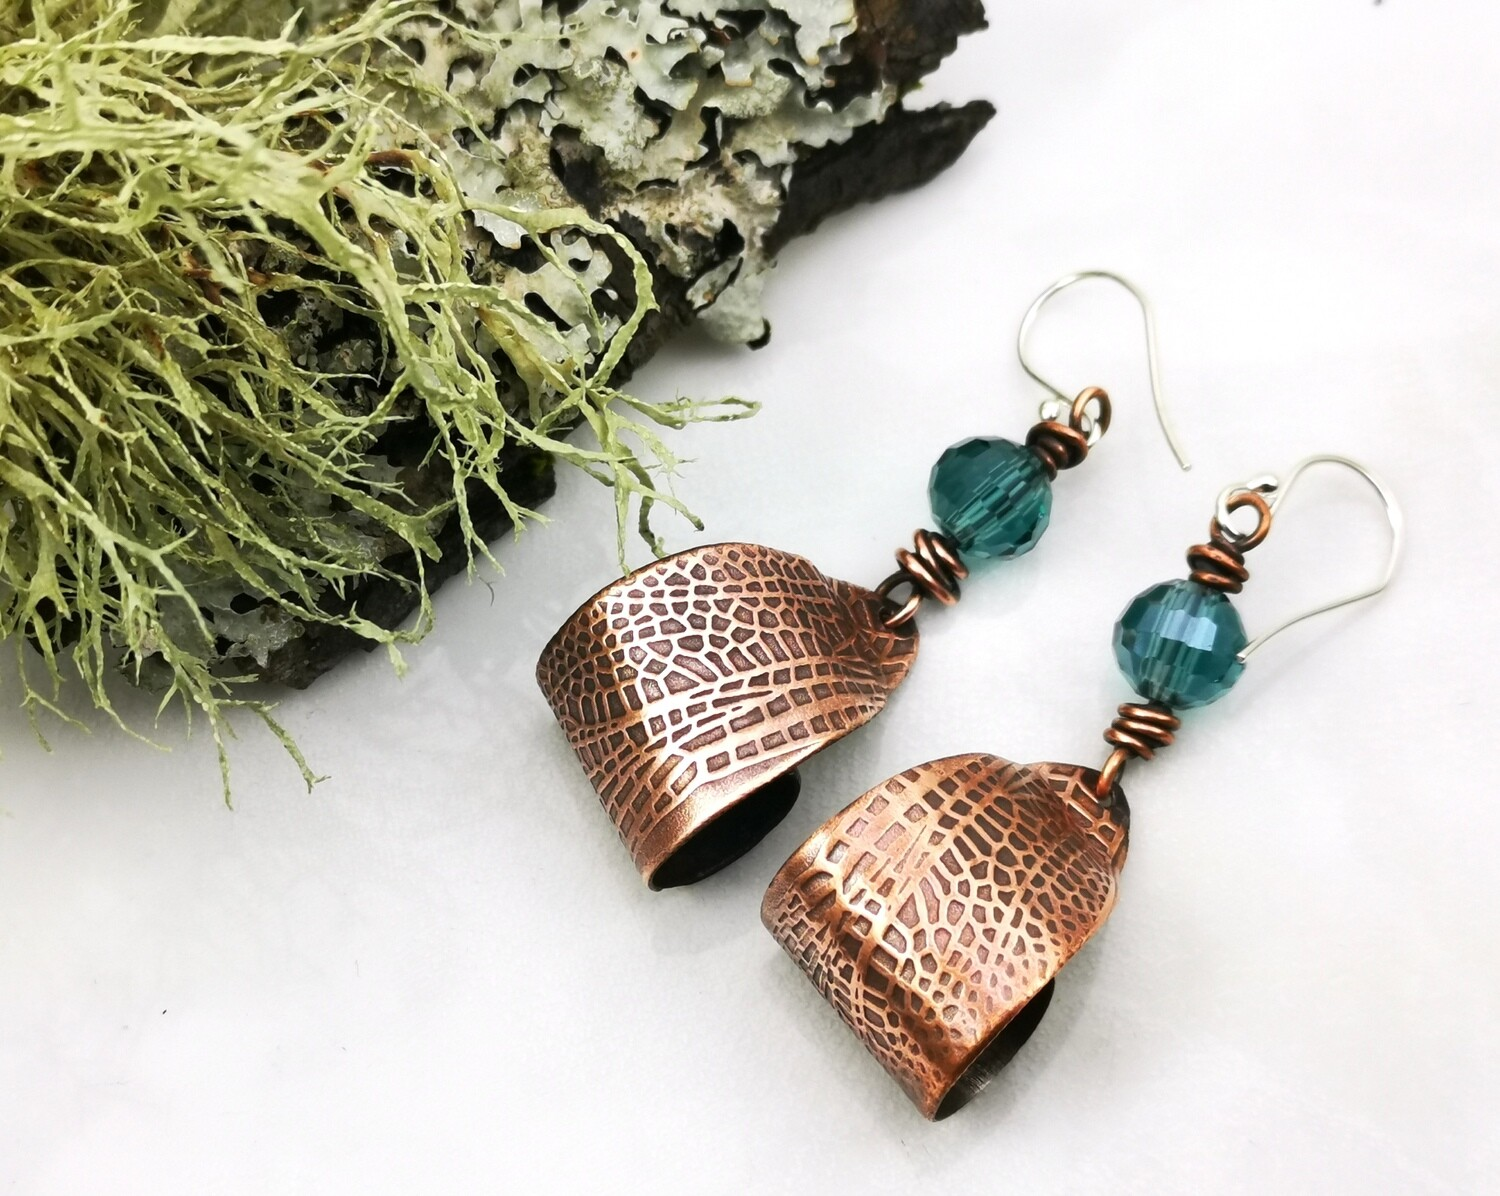 Curled Fairy / Dragonfly Wing Textured Dangle Copper Earrings with a faceted blue green bead